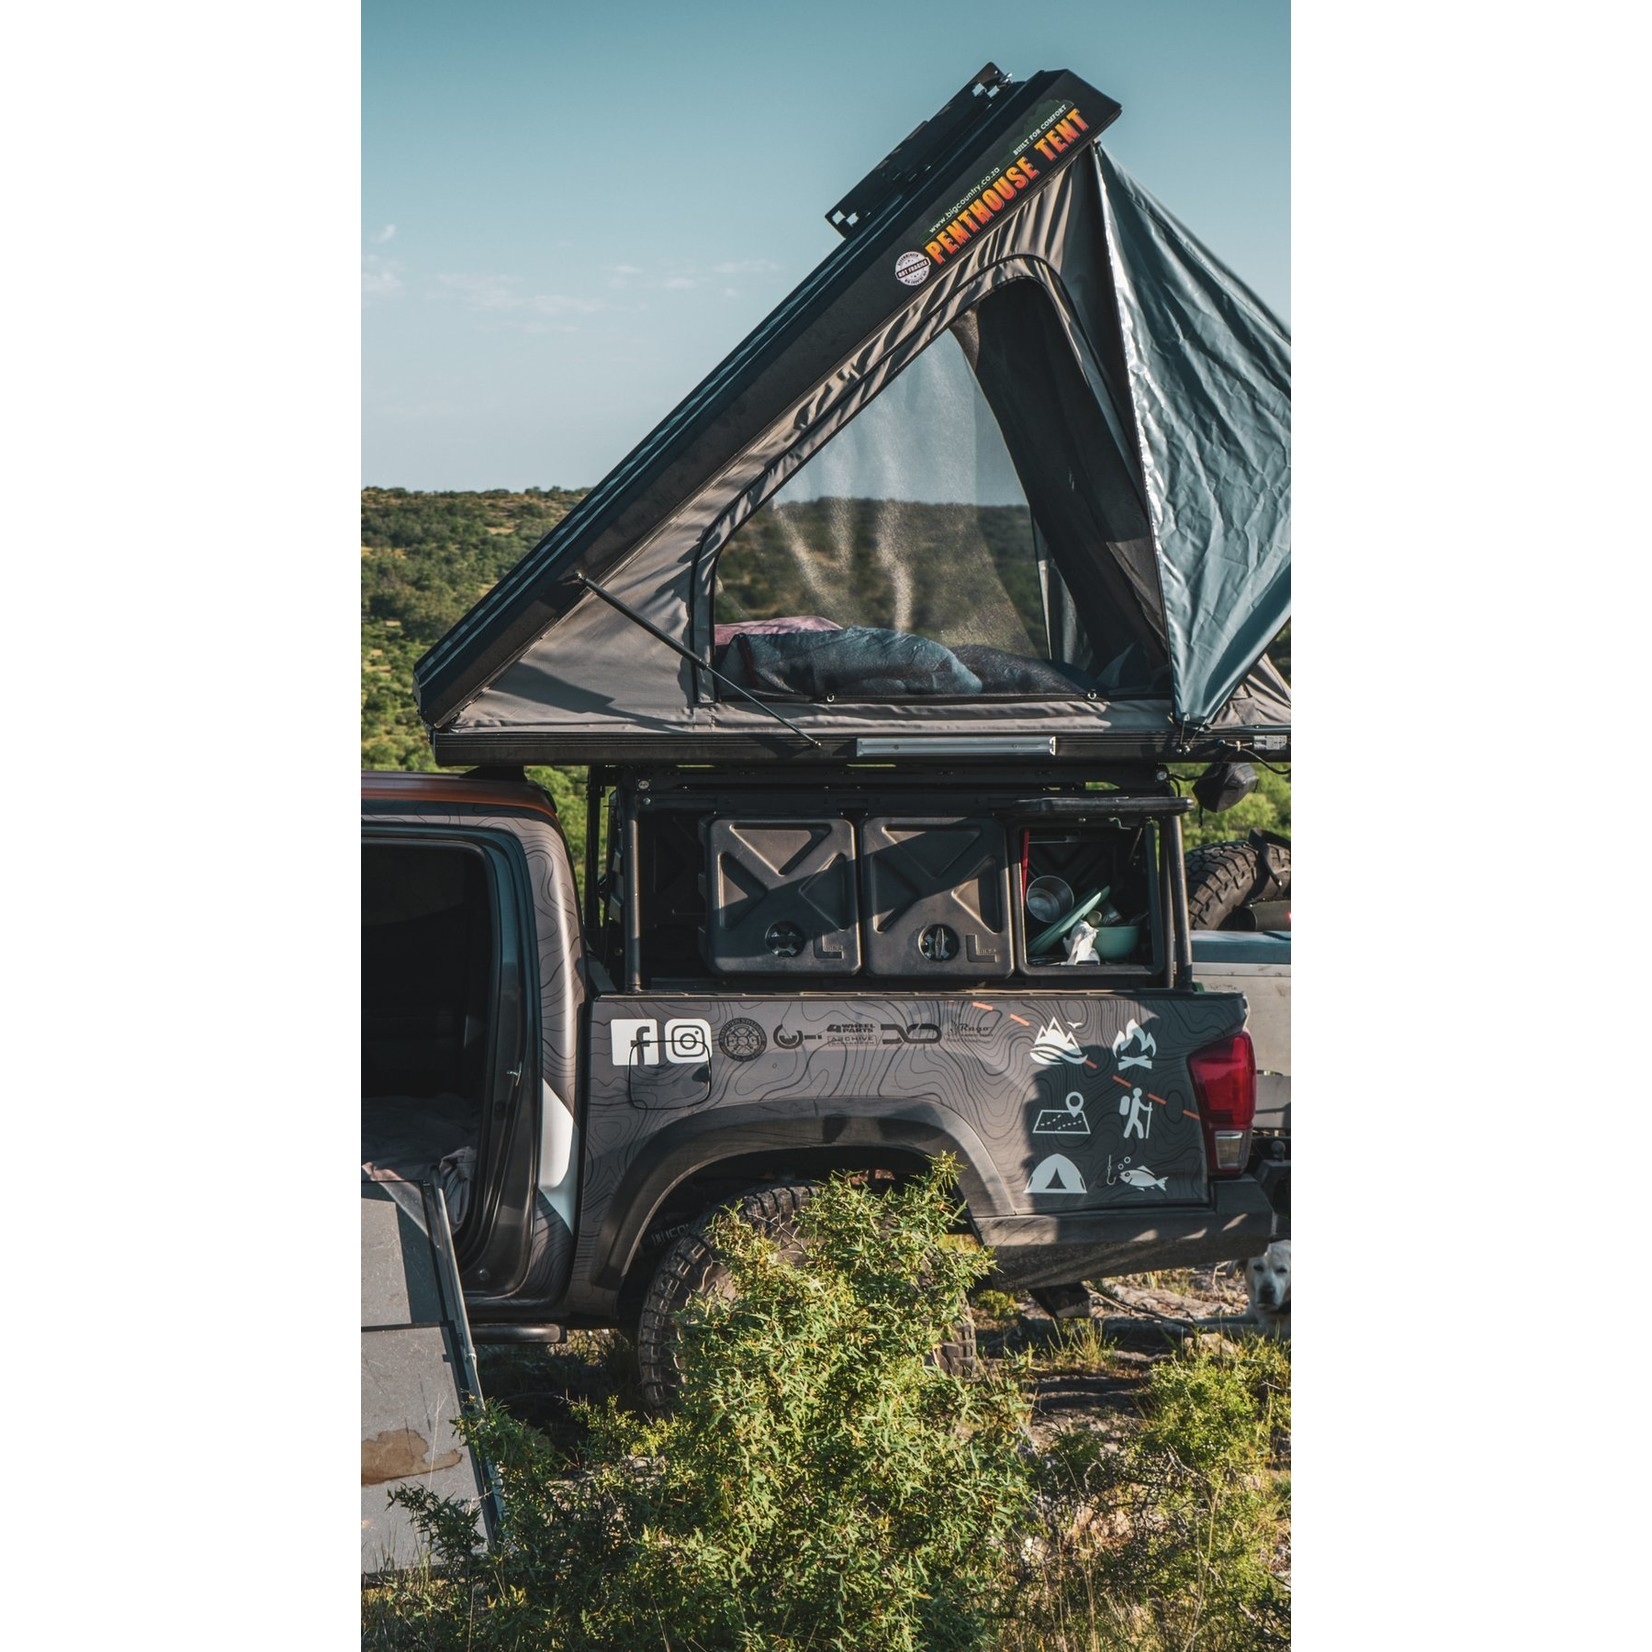 Big Country 4x4 Big Coungry 4x4 Penthouse Tent XL